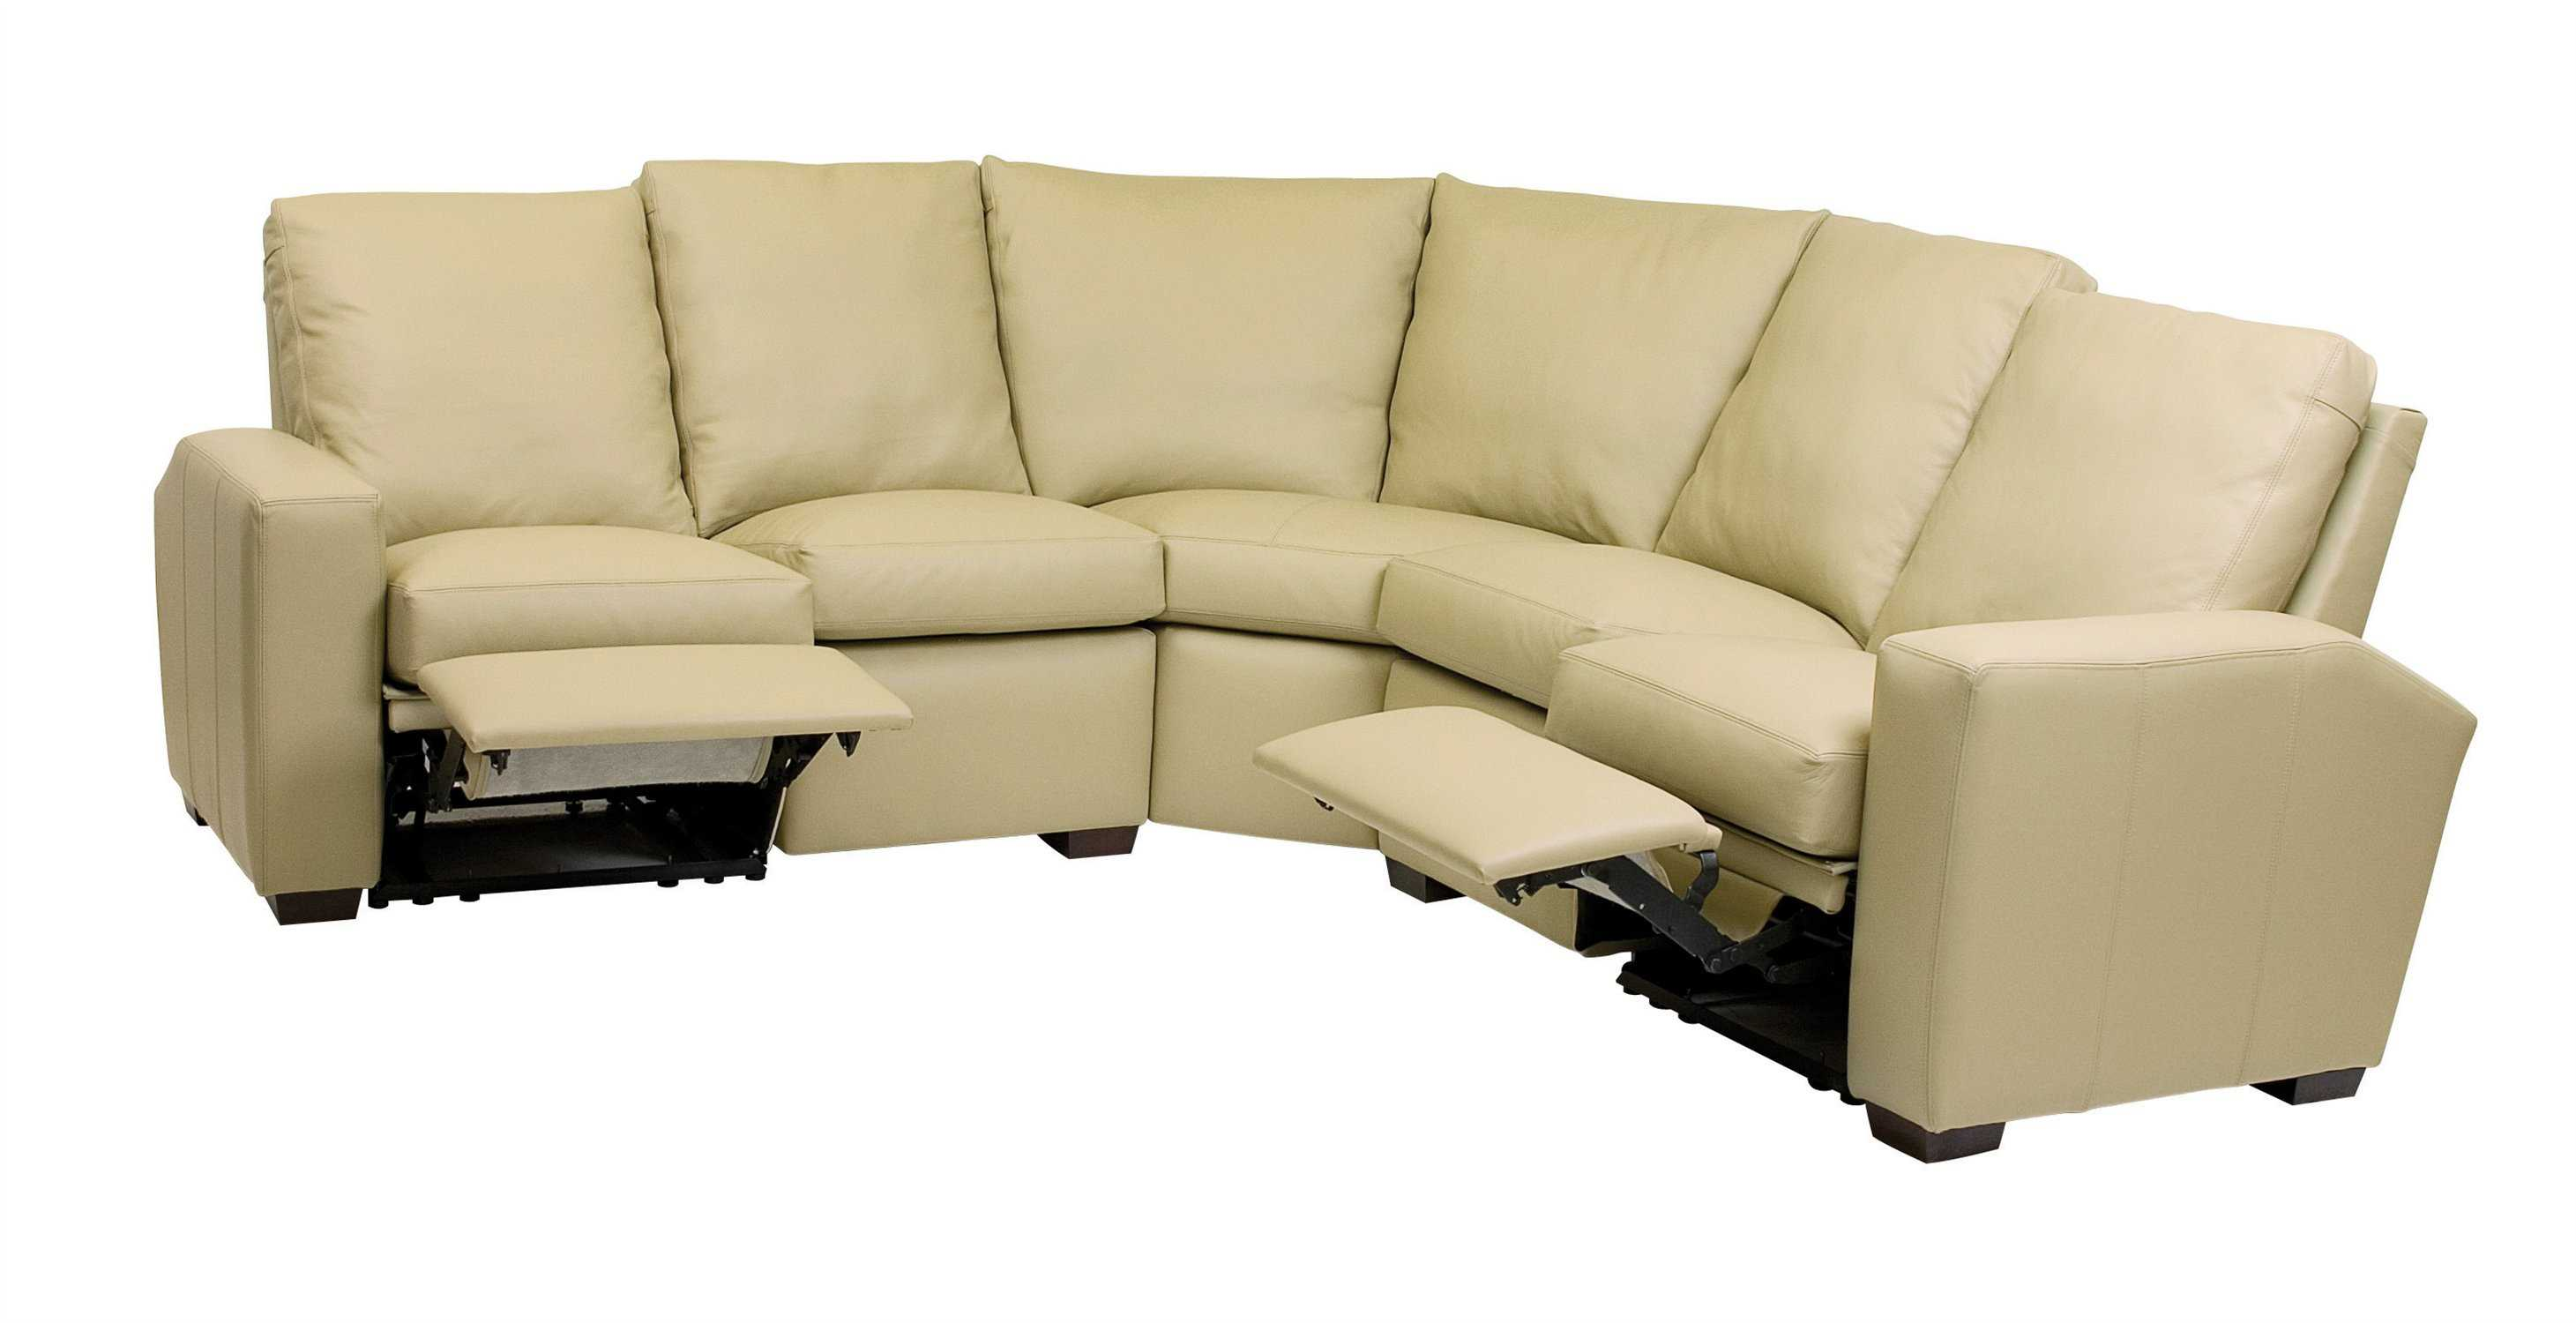 Classic leather metro reclining sectional sofa sfmetro1 for Sectional sofas